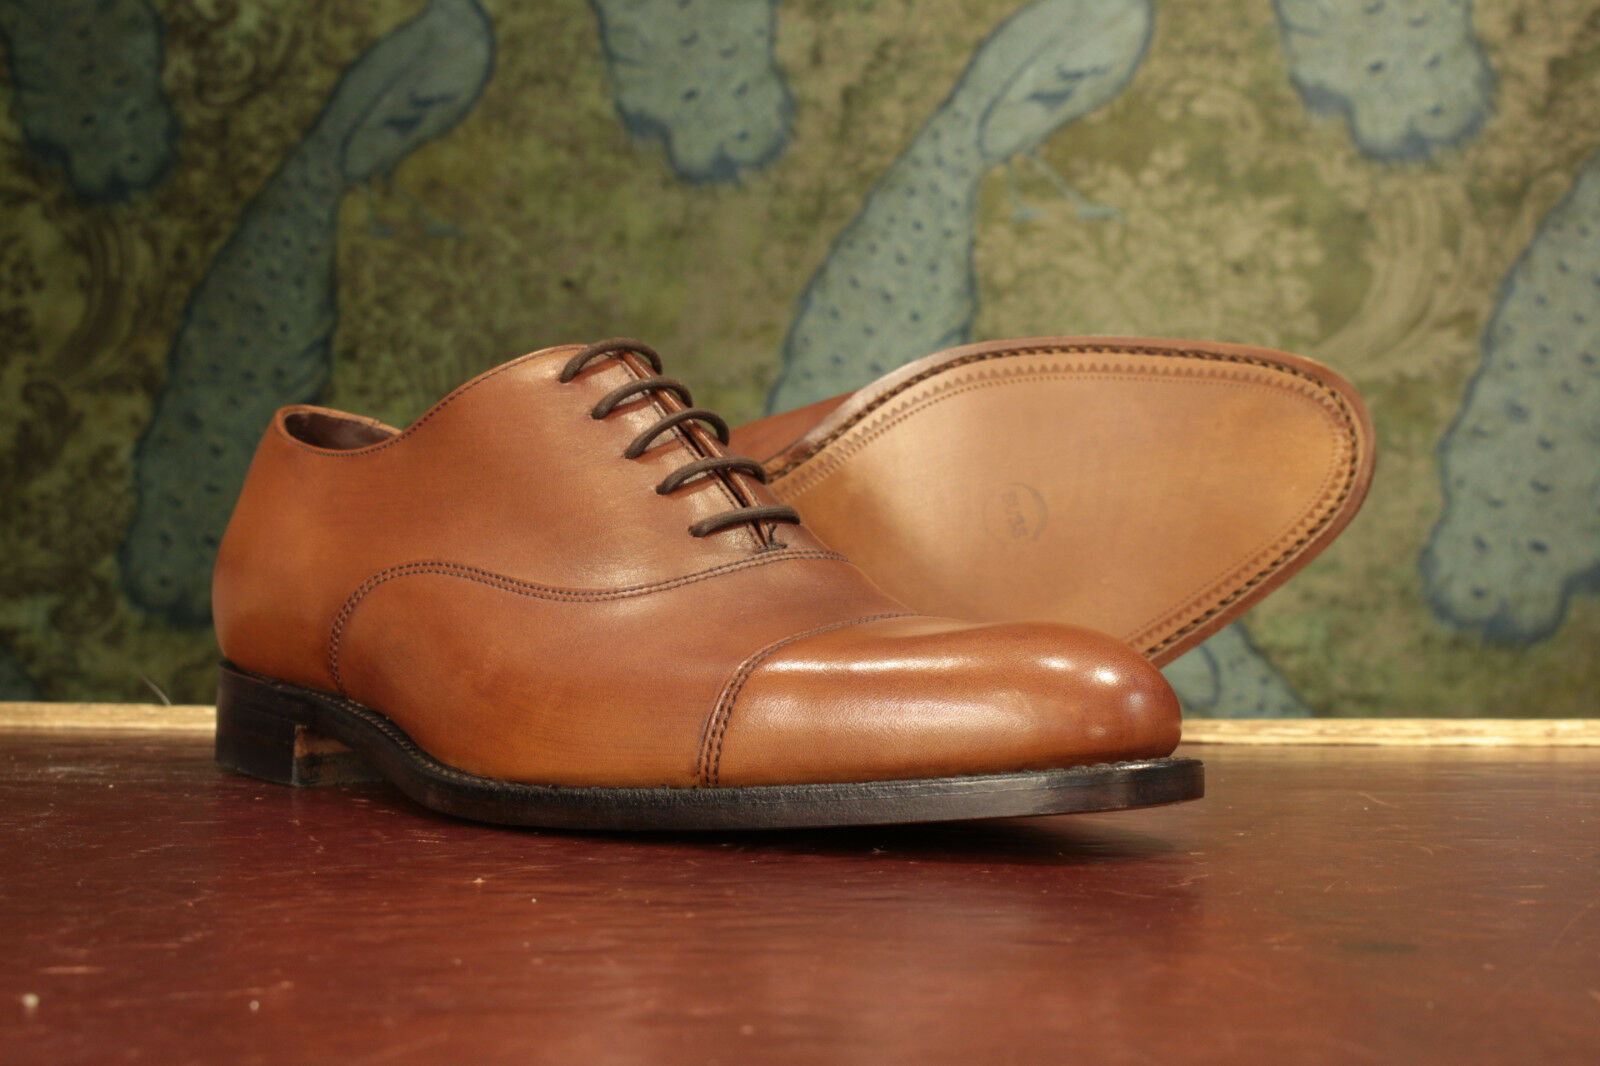 Loake Holborn Mahogany Oxford Schuhes 8G - NEU Seconds RRP £200 (16763)